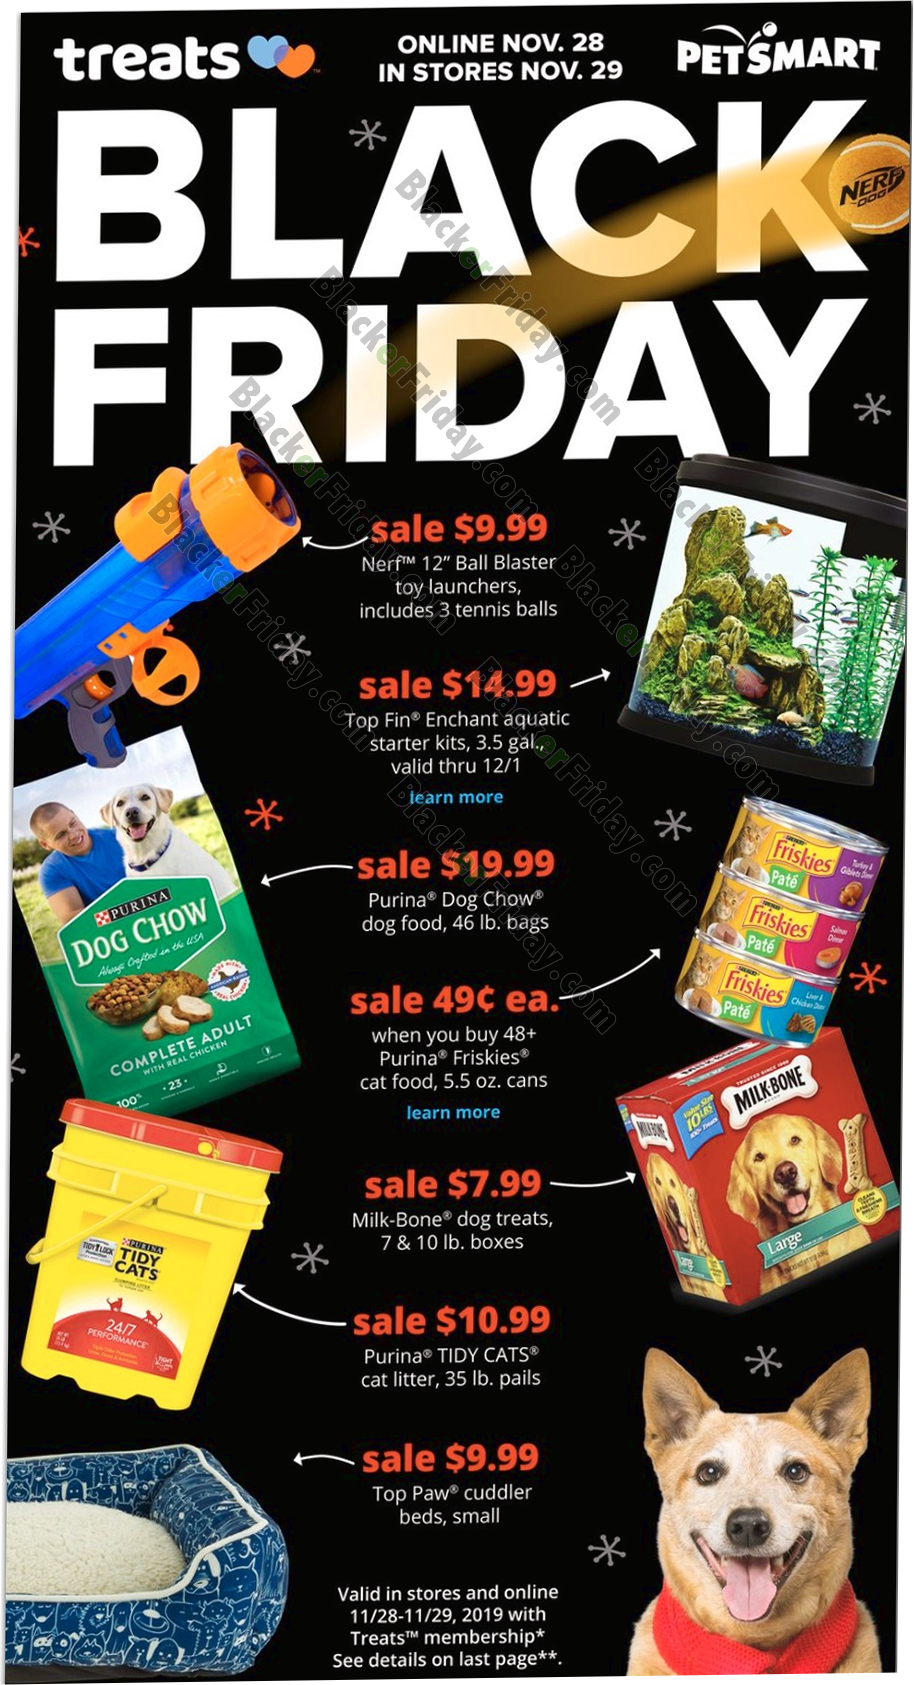 Petsmart Black Friday 2020 Sale What to Expect Blacker